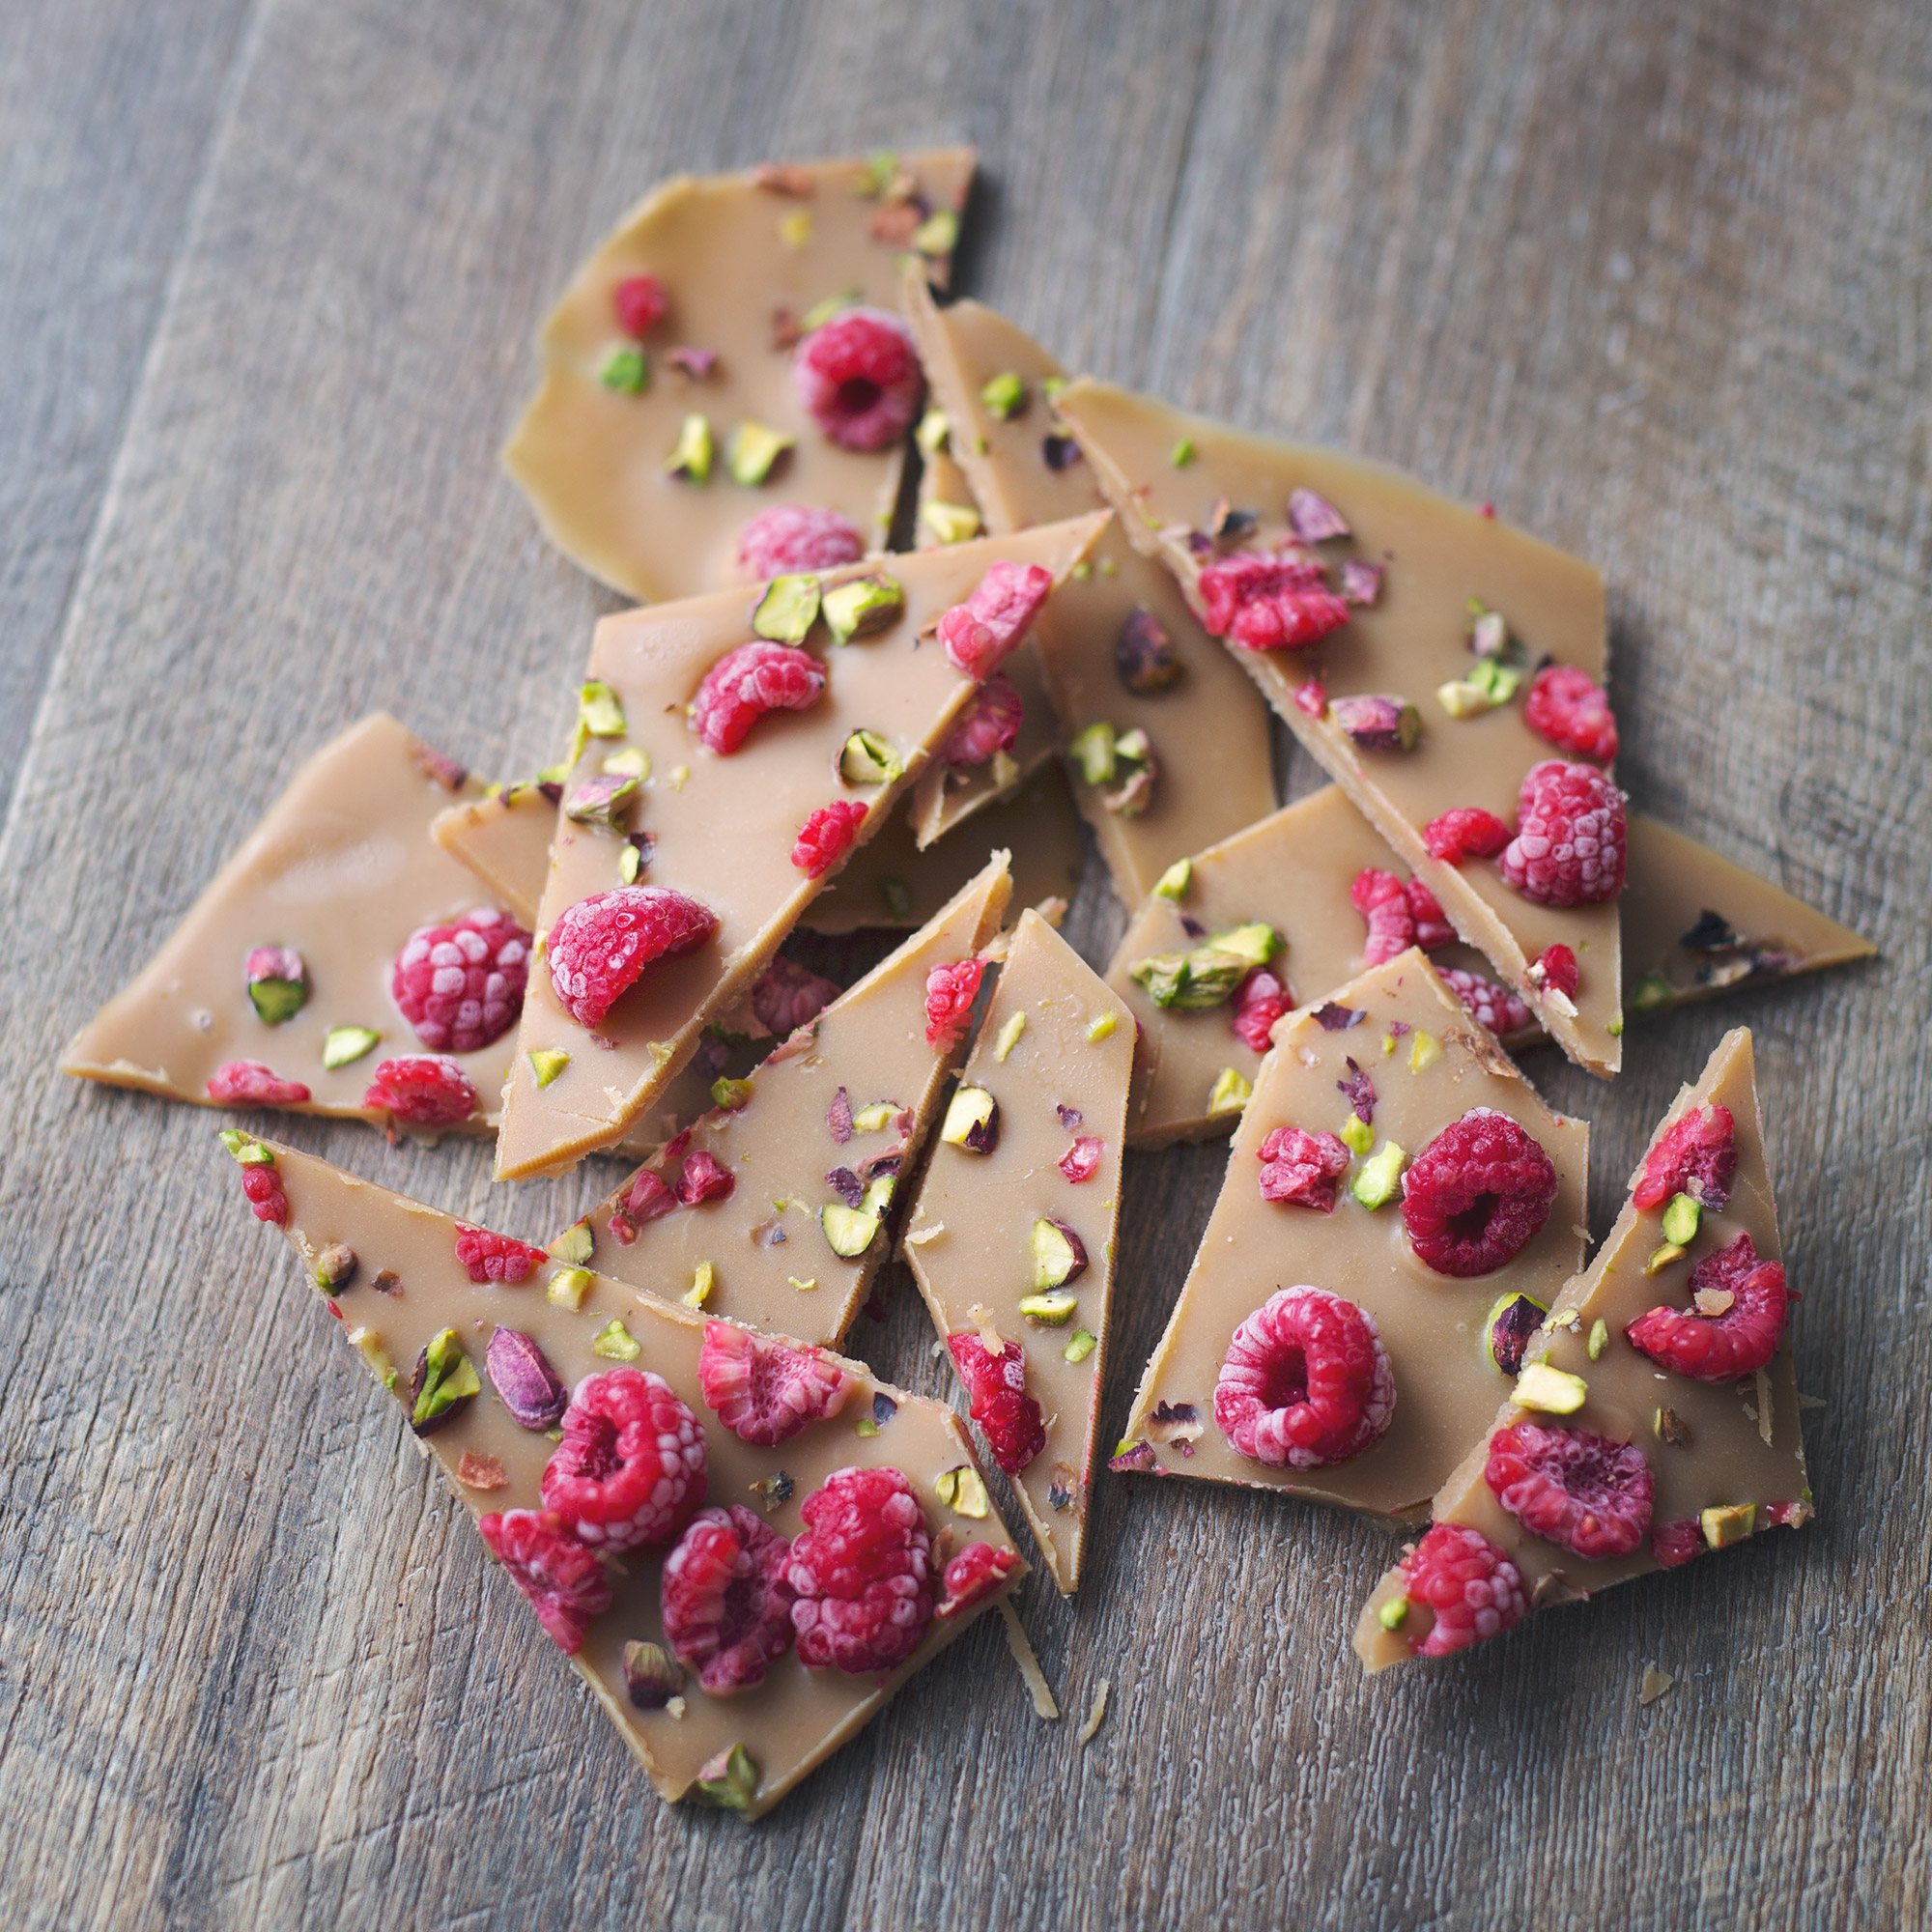 Rose White Chocolate Bark with Raspberries & Pistachio's